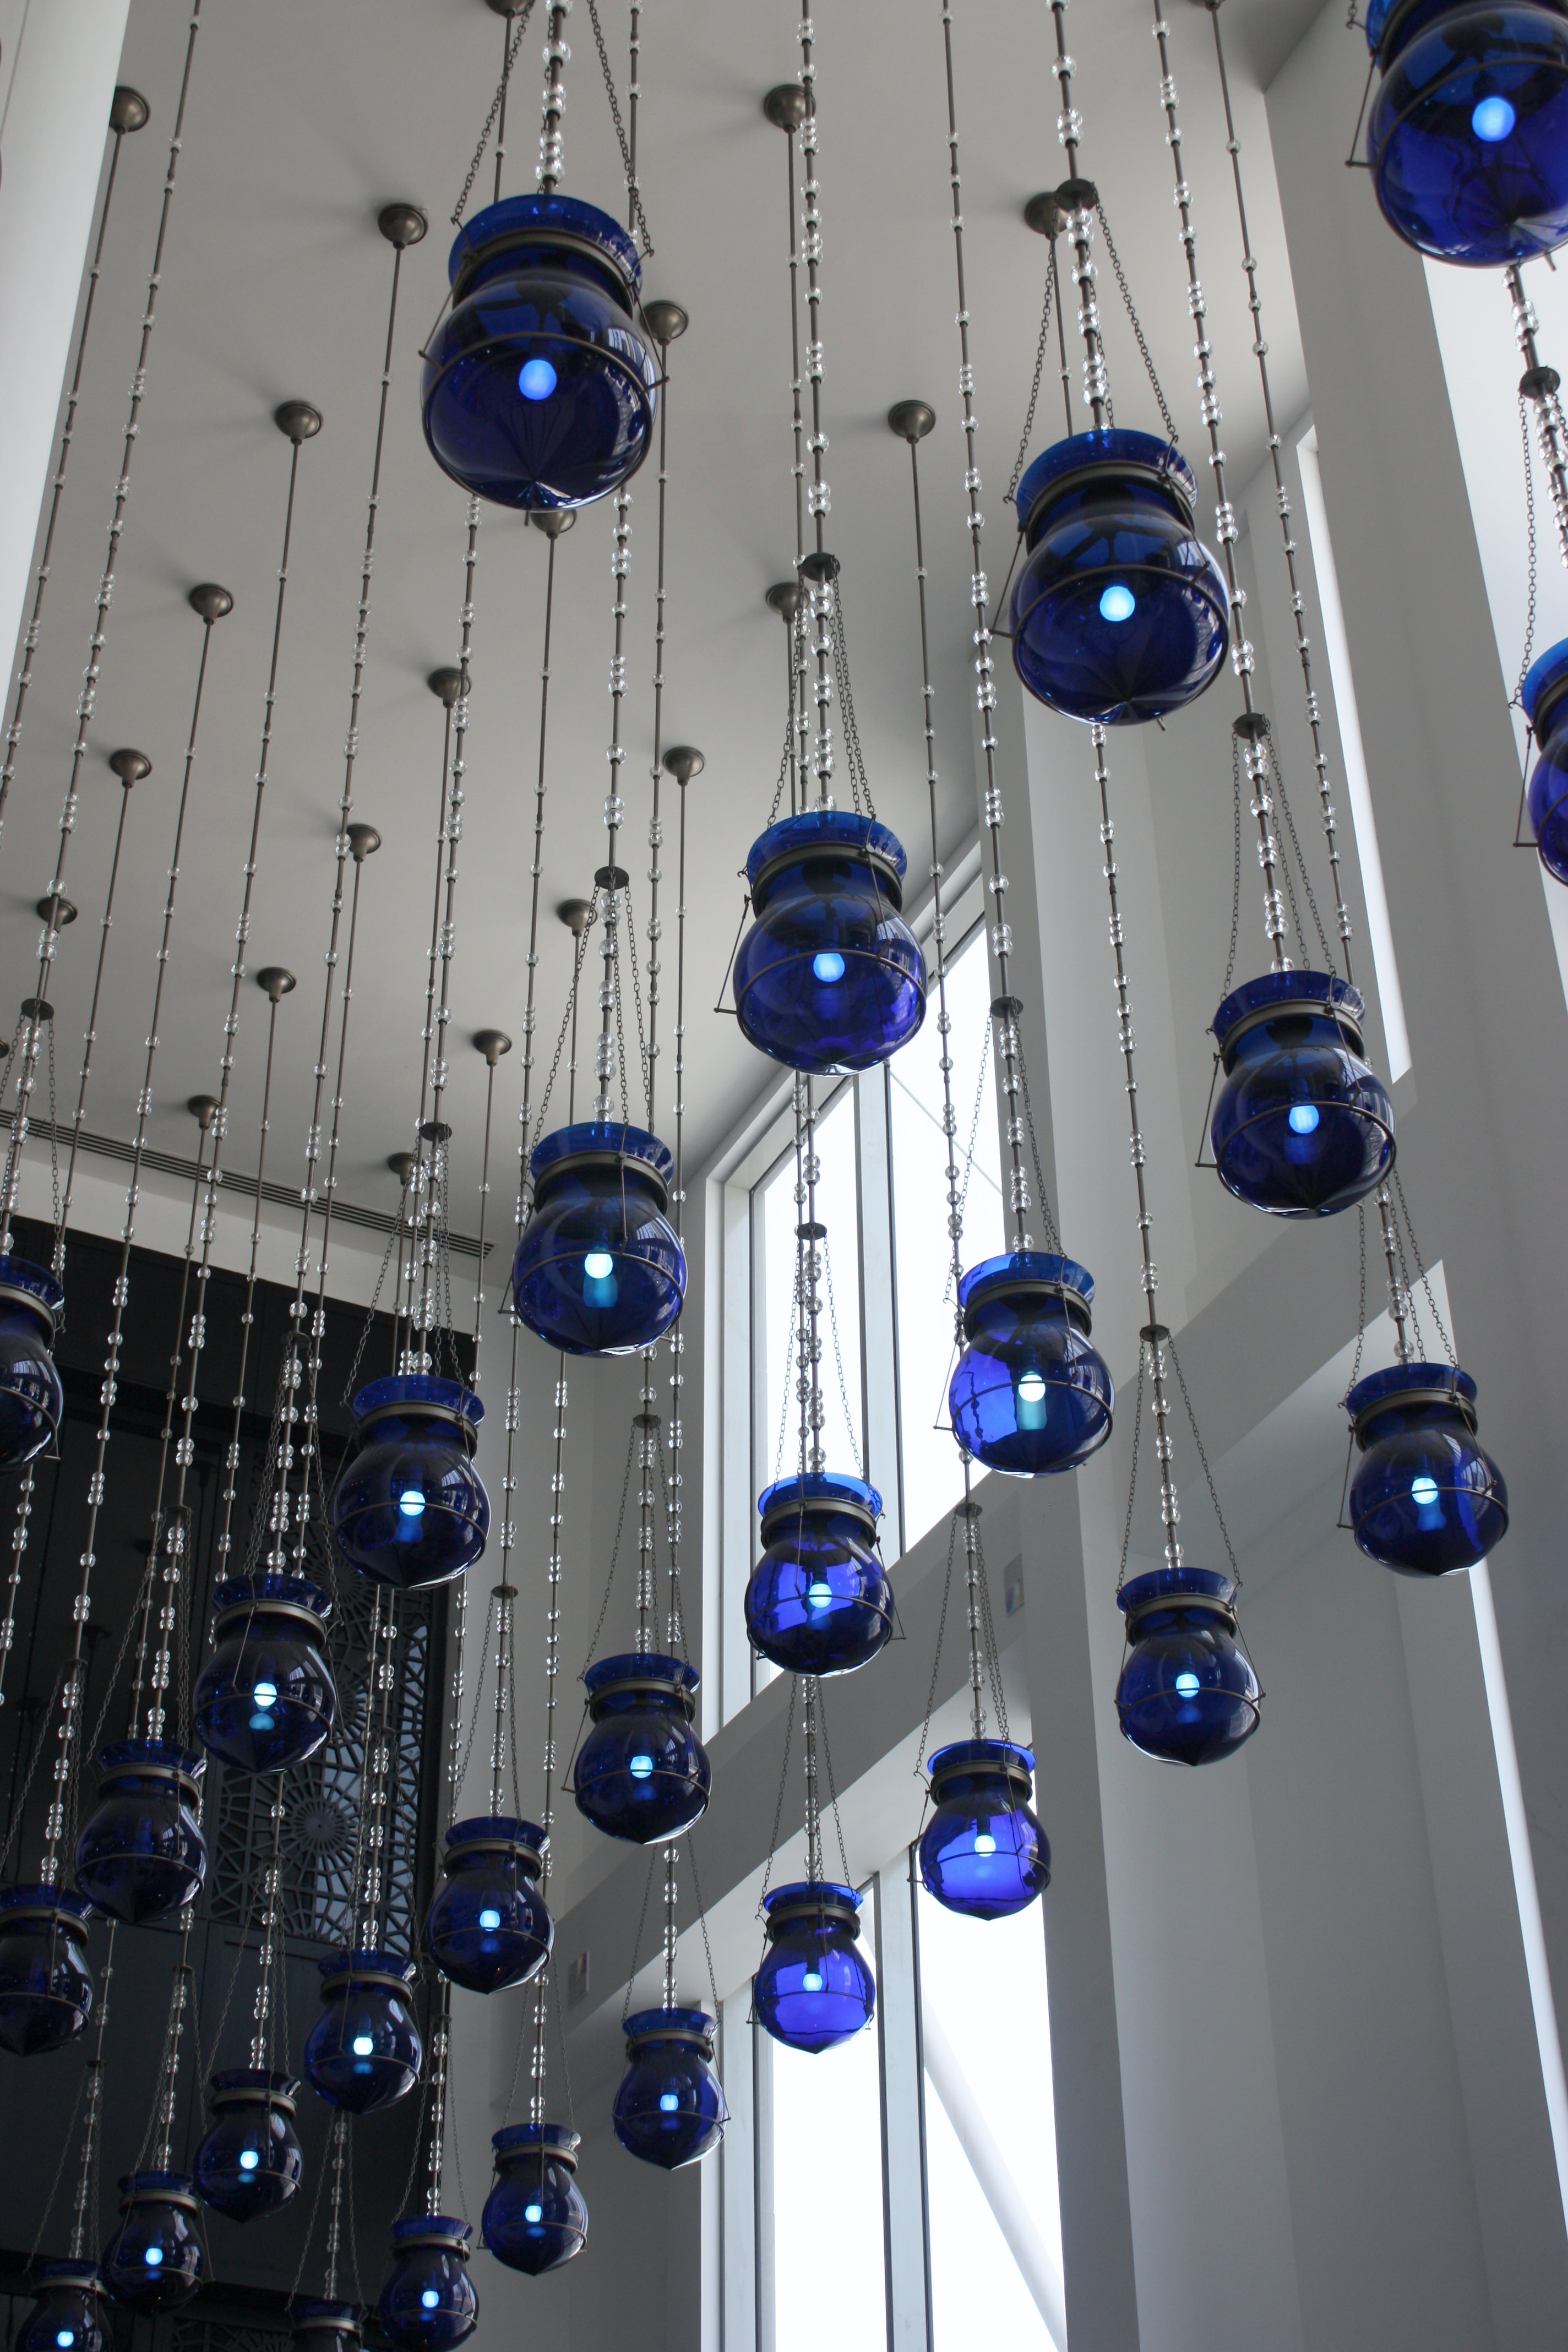 Blue lanterns hanging from the ceiling in a white tall room